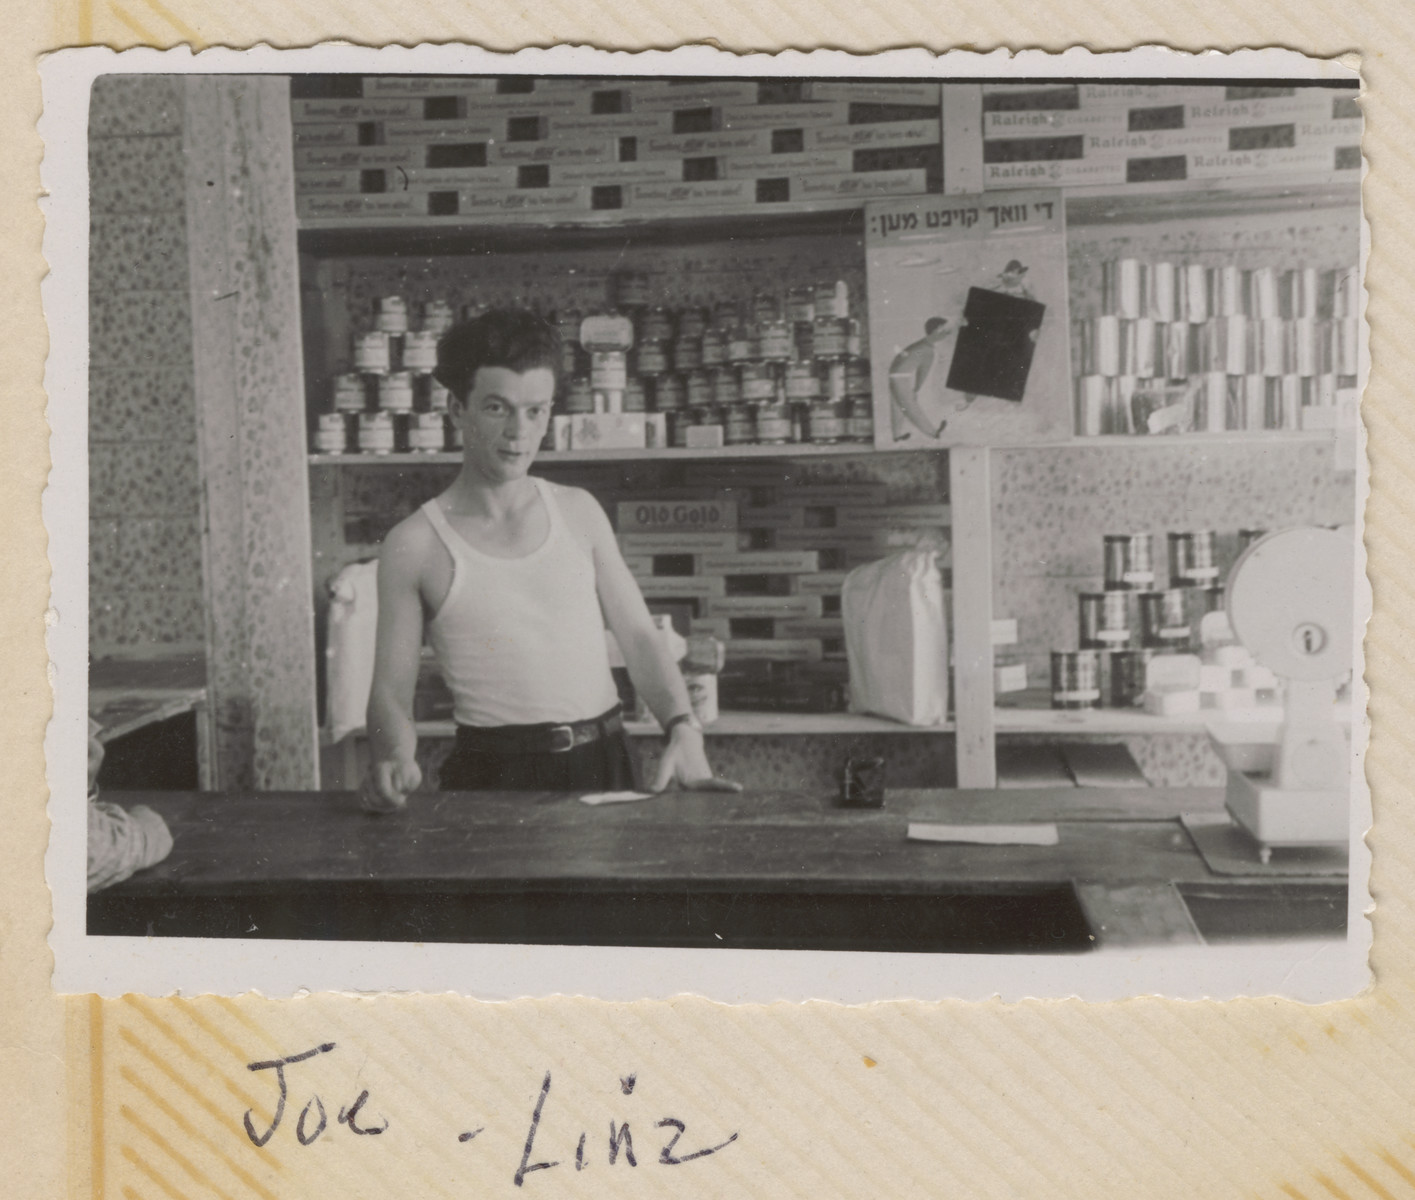 Joseph Pinczuk works in a grocery store in the Wegscheid displaced persons camp in Linz, Austria.